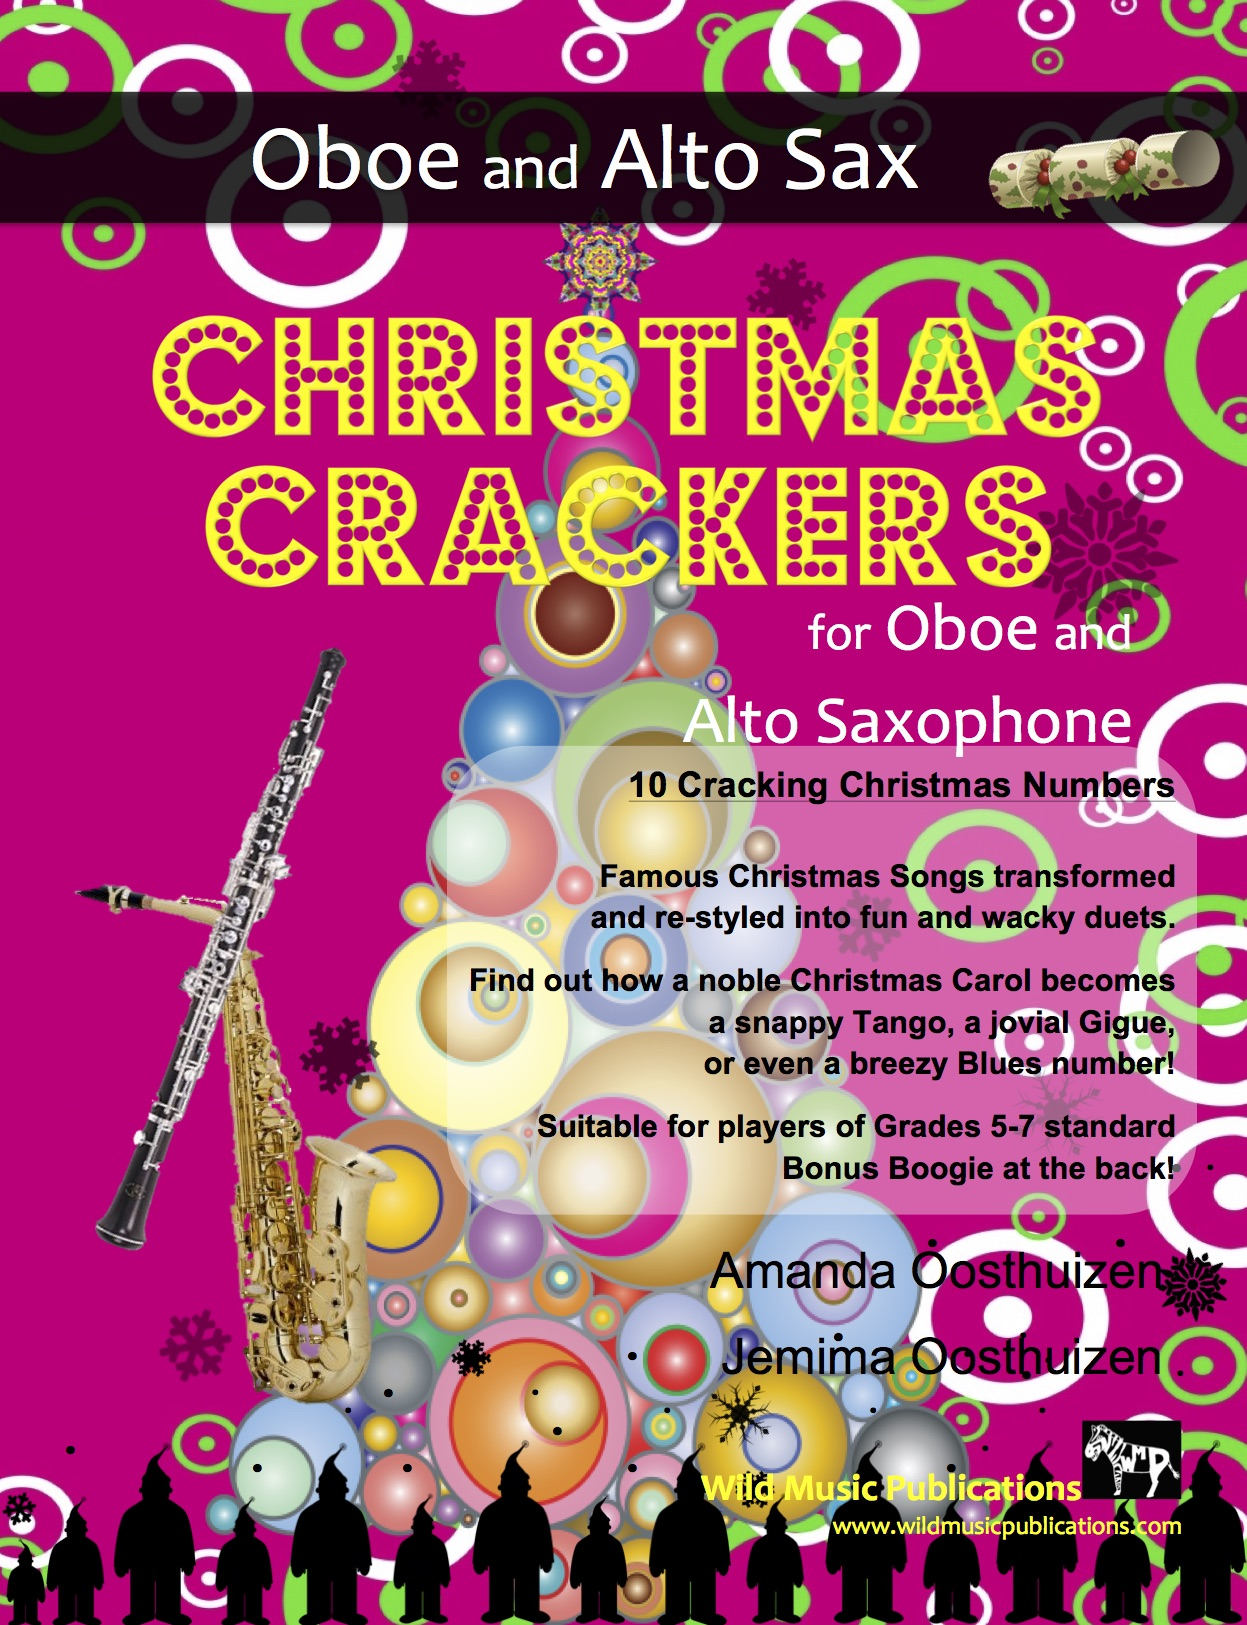 Christmas Crackers for Oboe and Alto Saxophone - Wild Music Publications